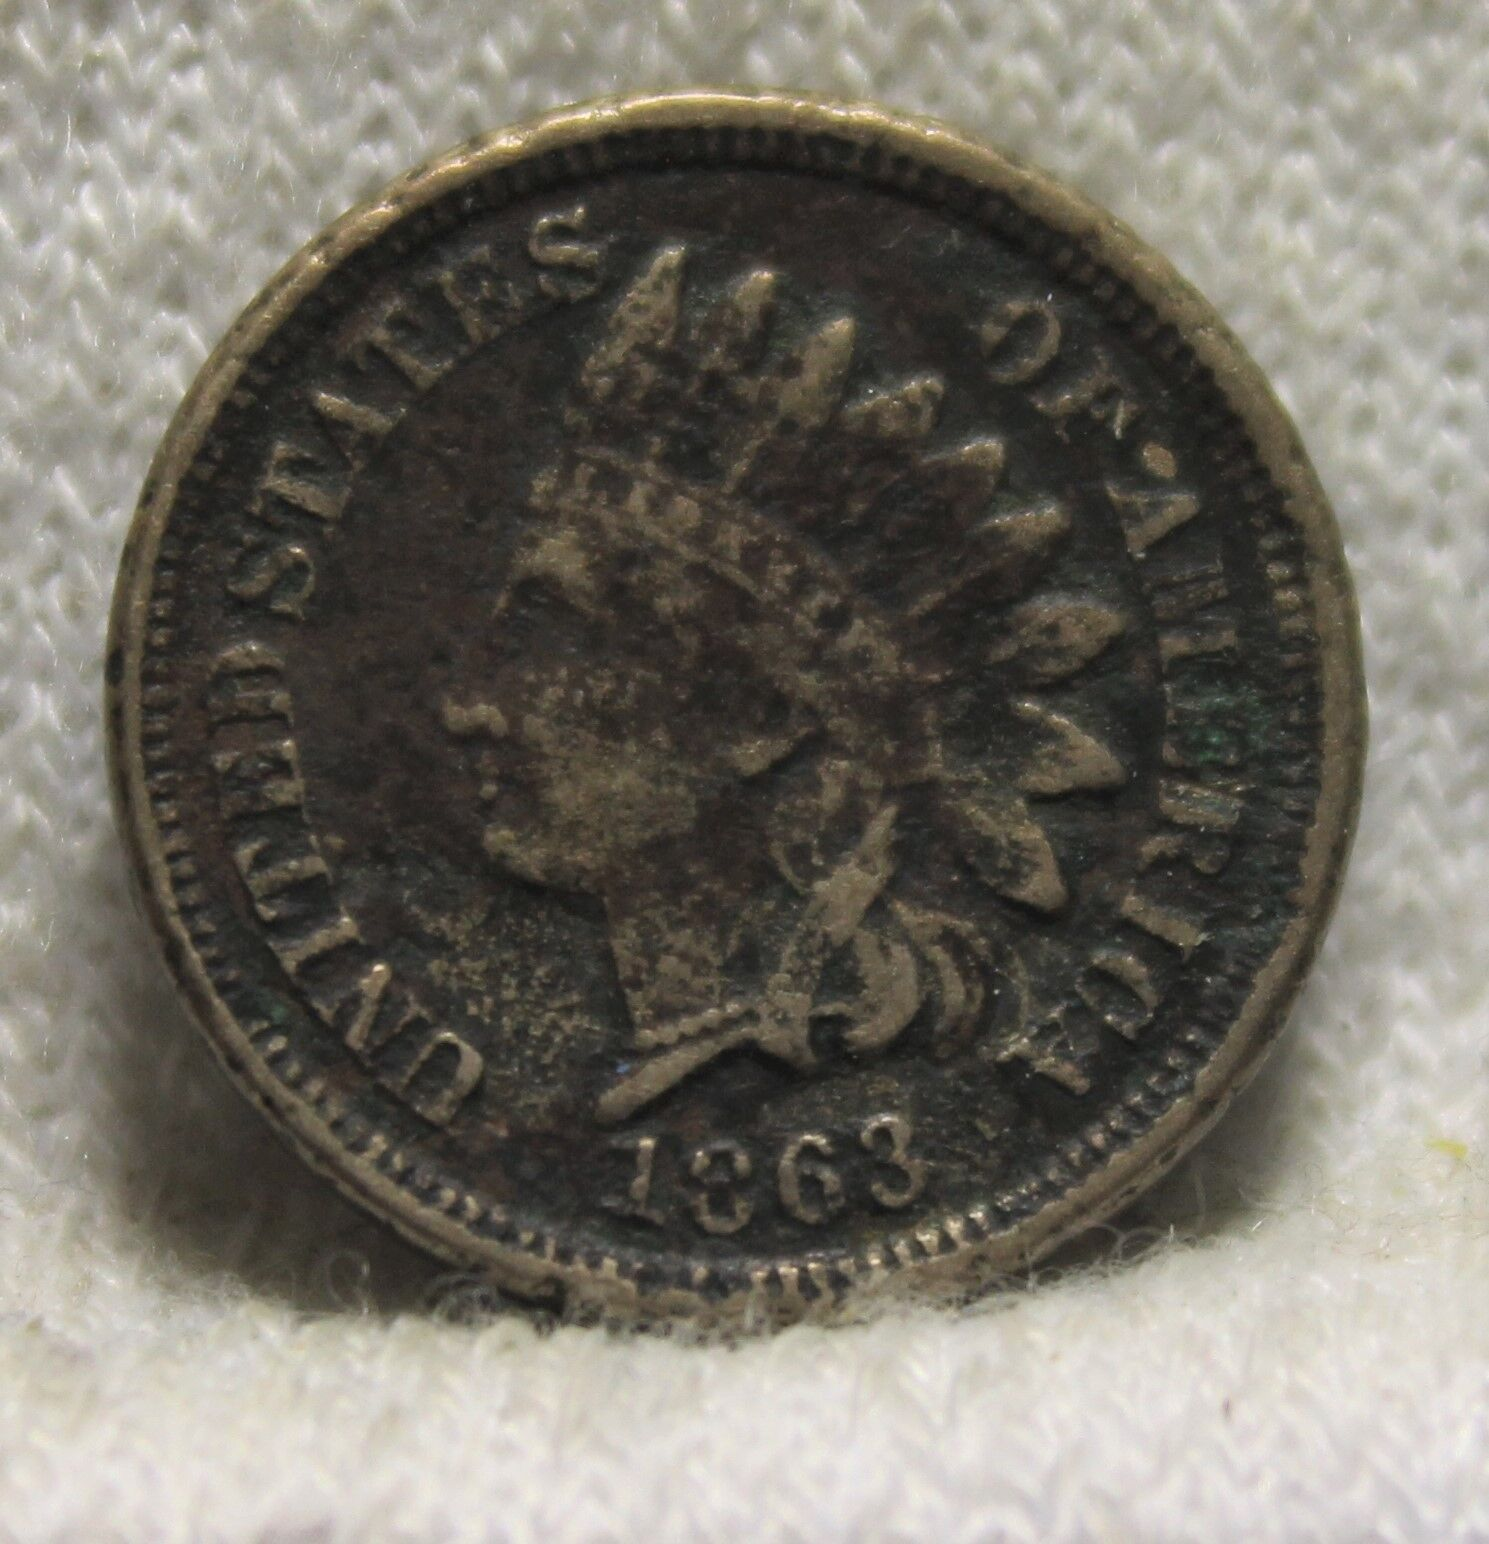 1863 Indian Head Penny - $19.95